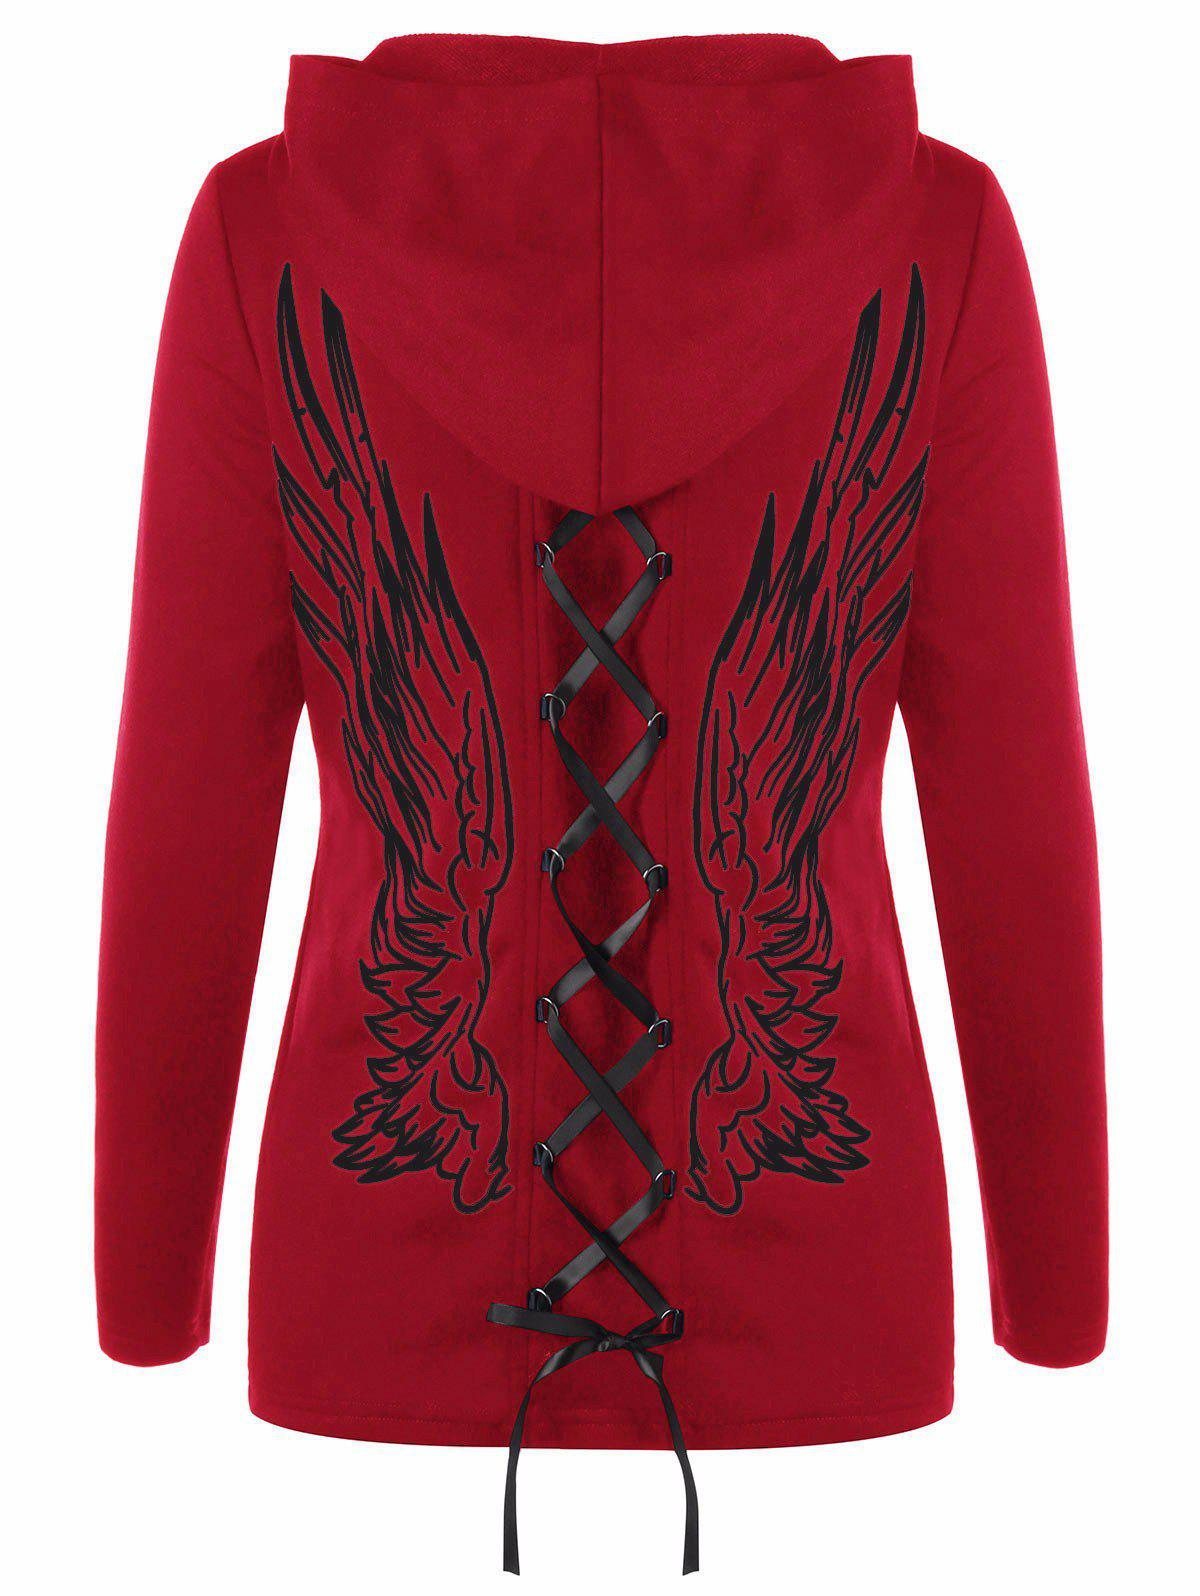 Double Lace-up Wings Print Zip Up Hoodie lace up hoodie